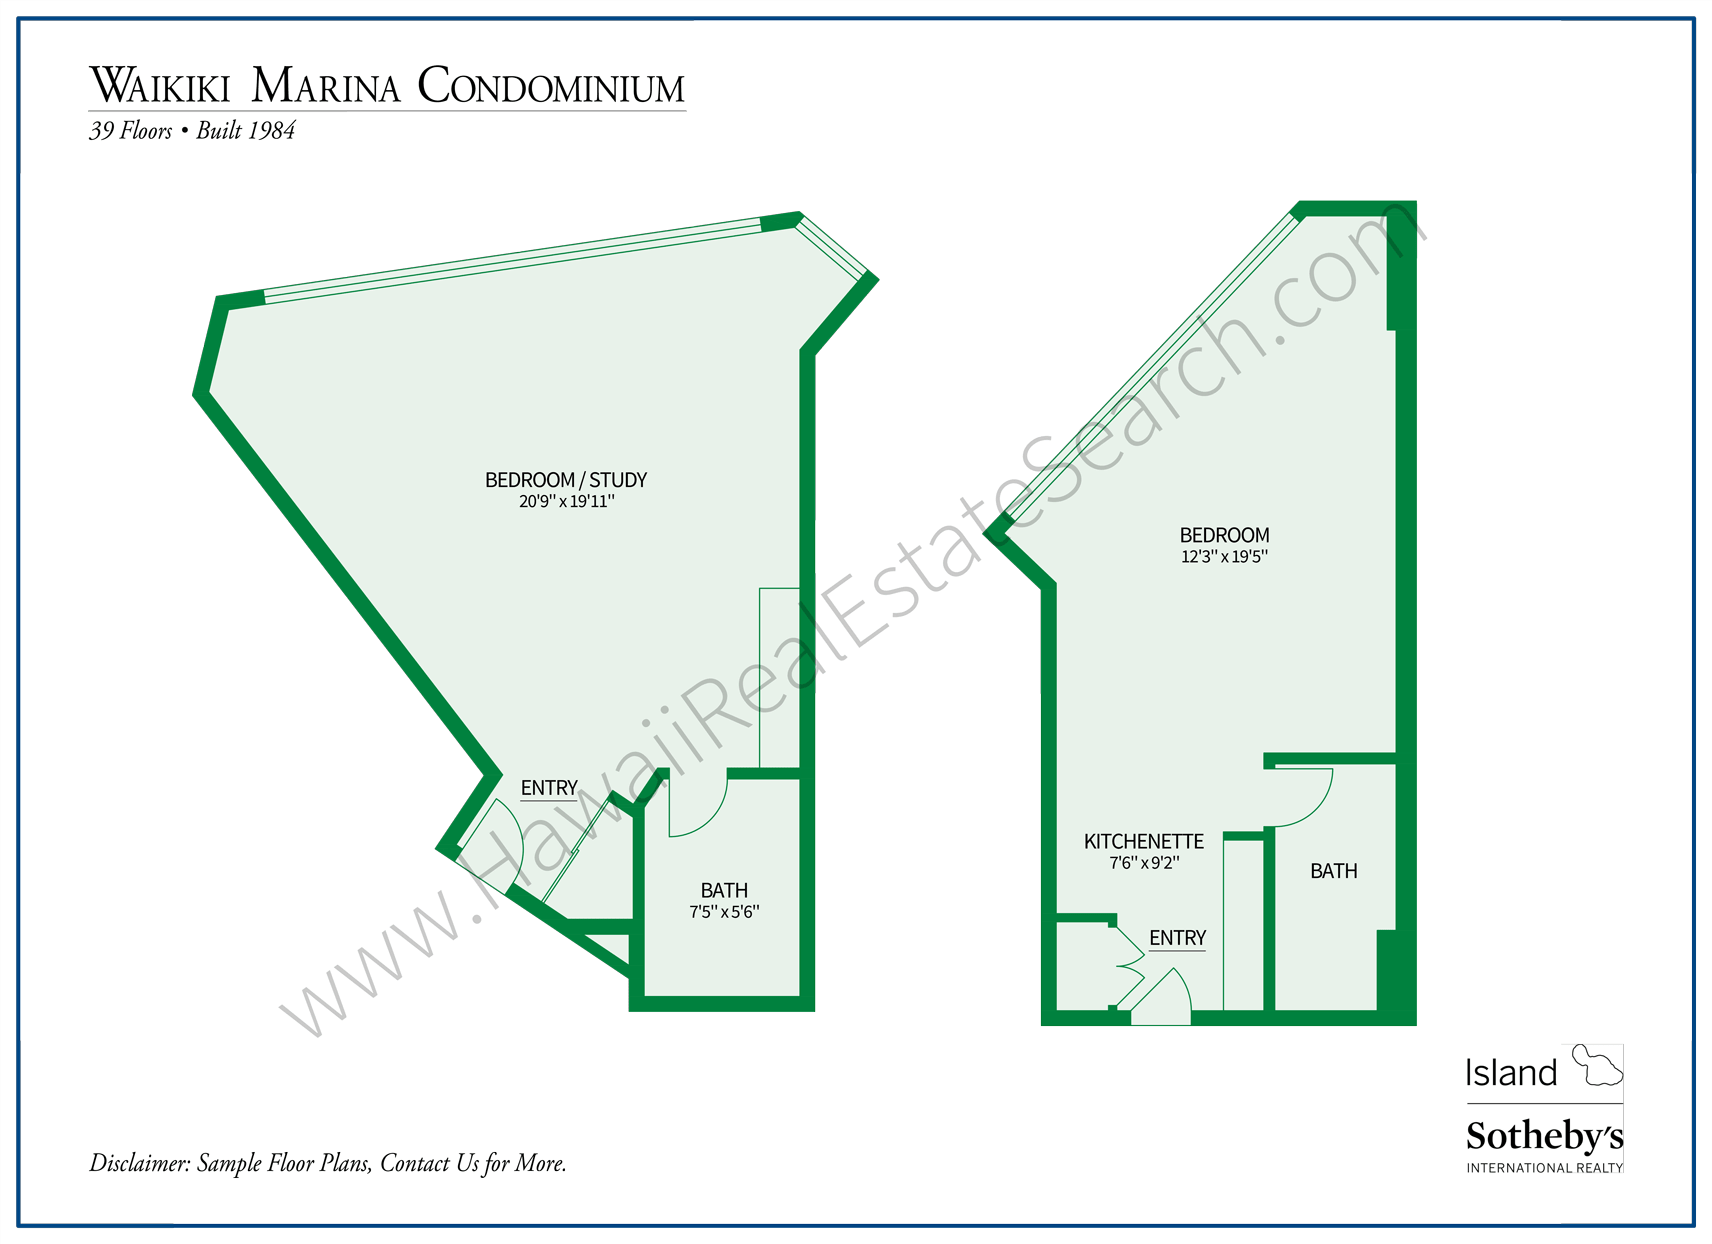 Waikiki Marina Condominium Floor Plans